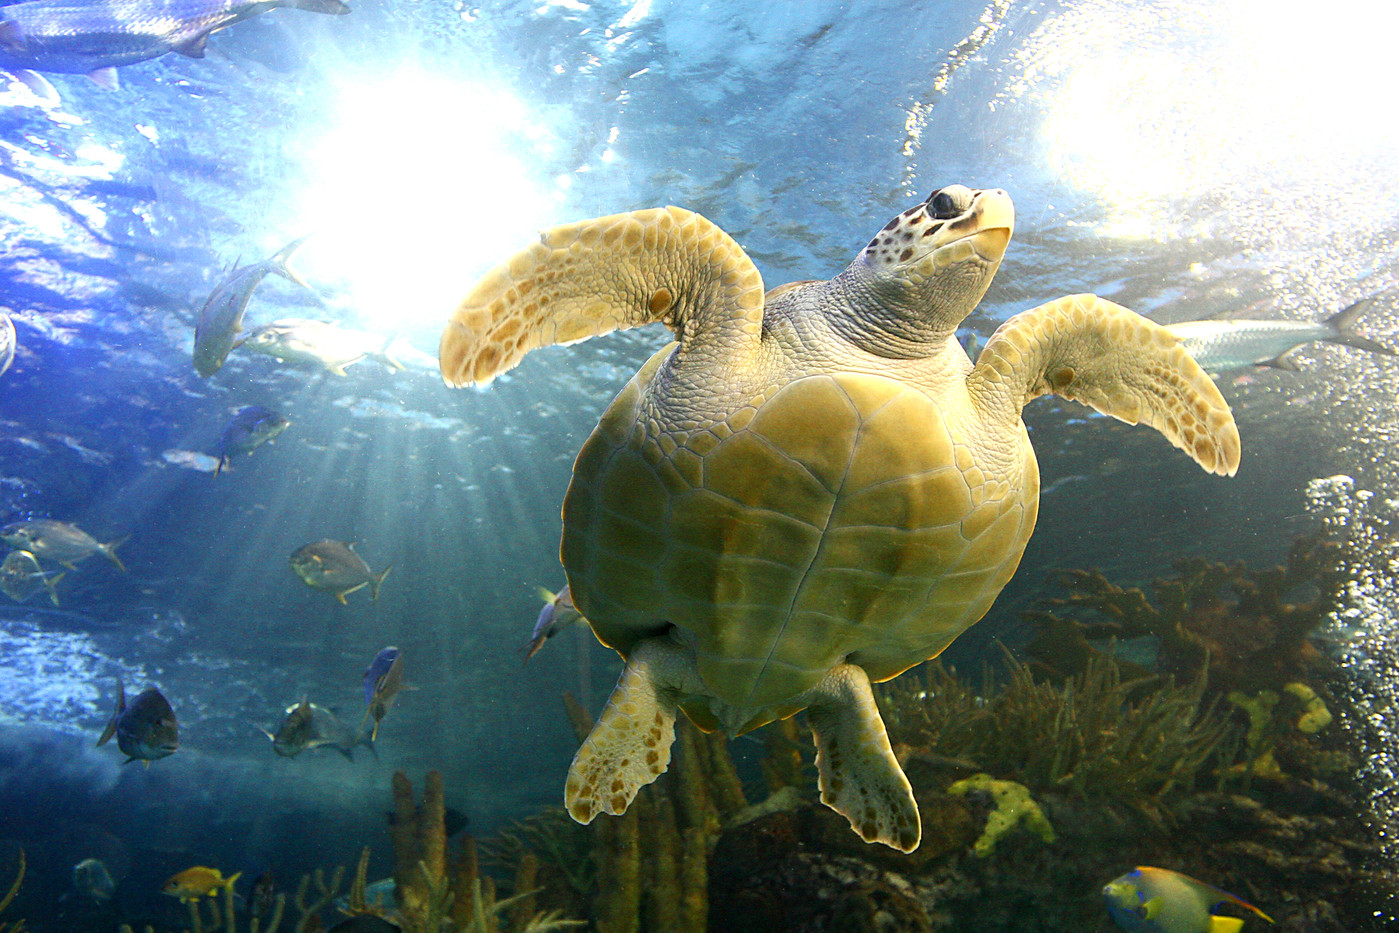 Green Turtle in an aquarium in New Orleans, USA